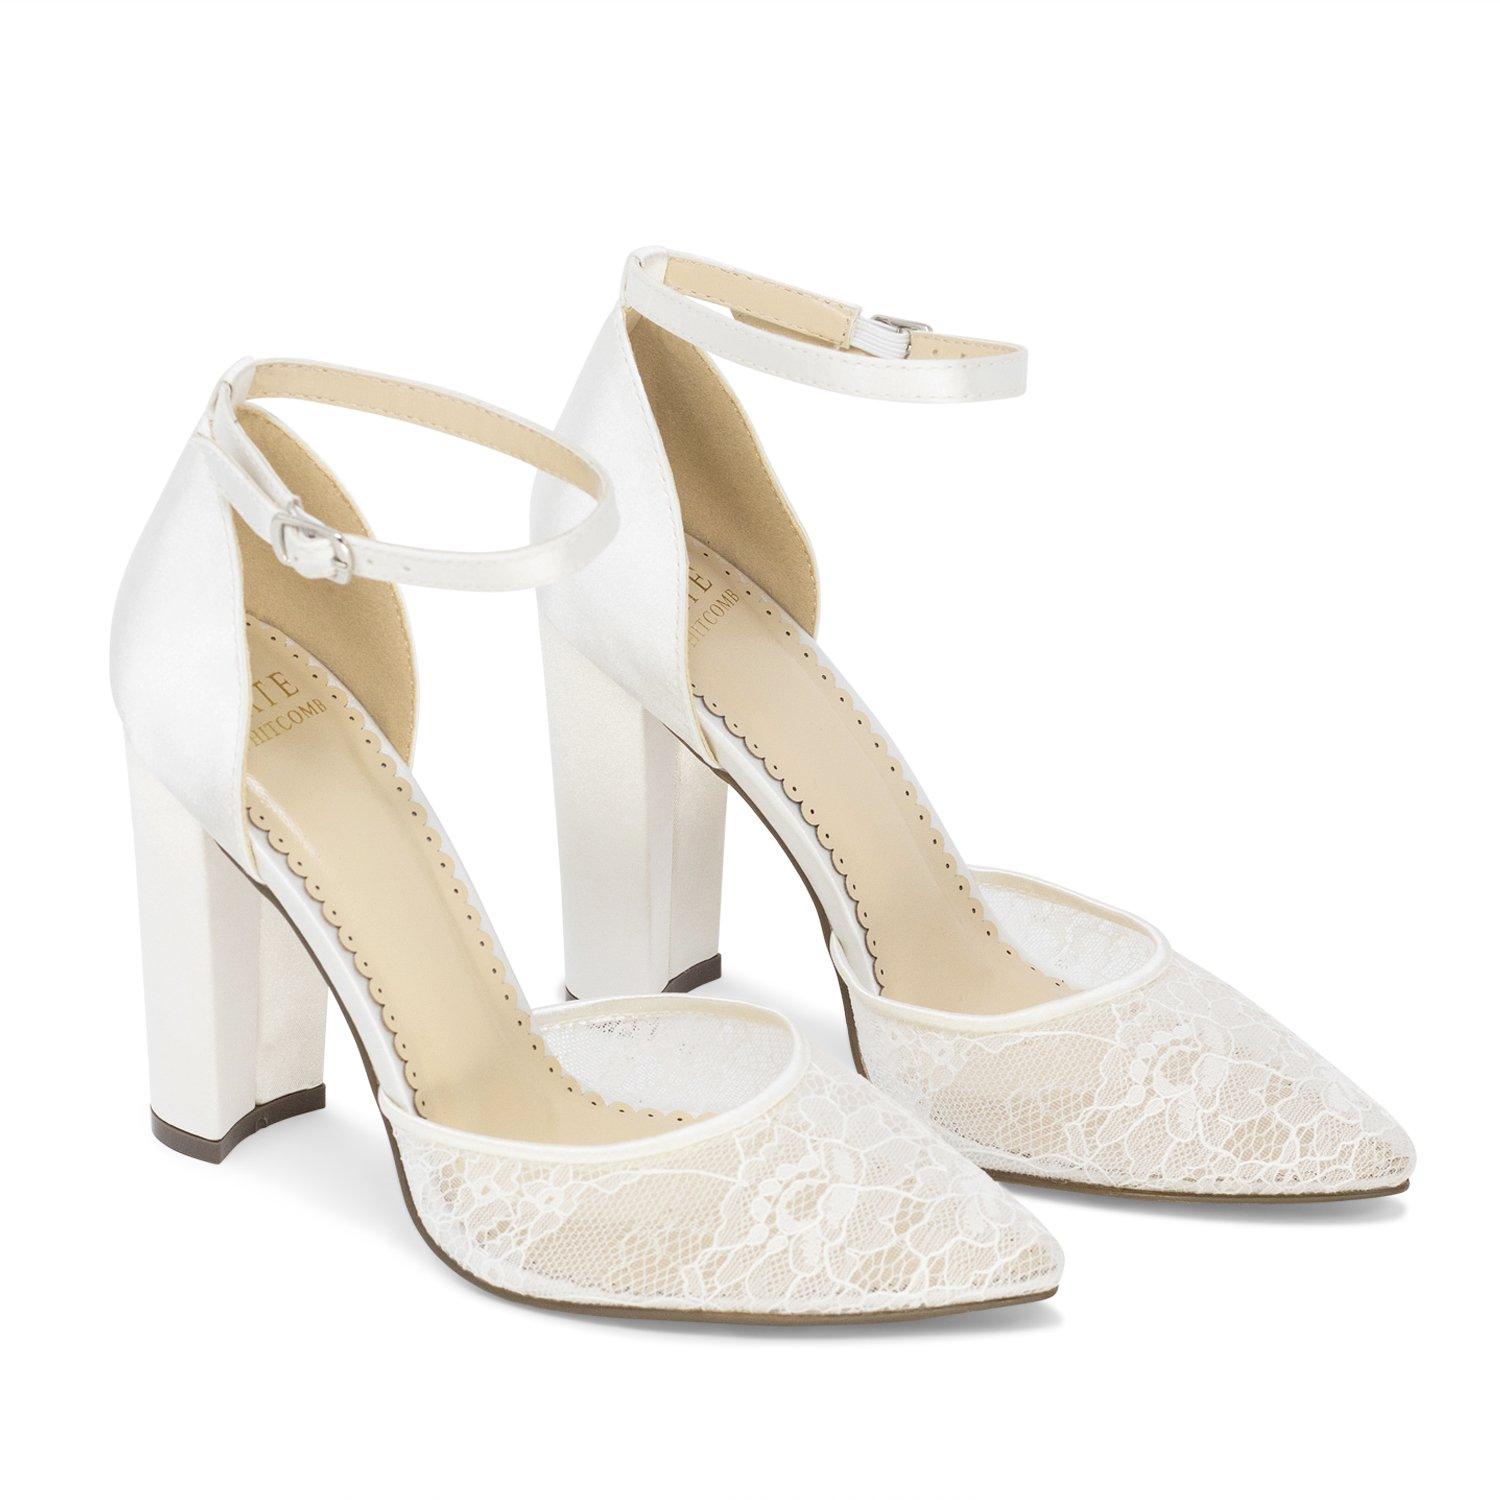 Bridal Shoes Lace High Heel Hailey Ivory In 2020 Bridal Heels Wedding Shoes Heels Wedding Shoes Lace